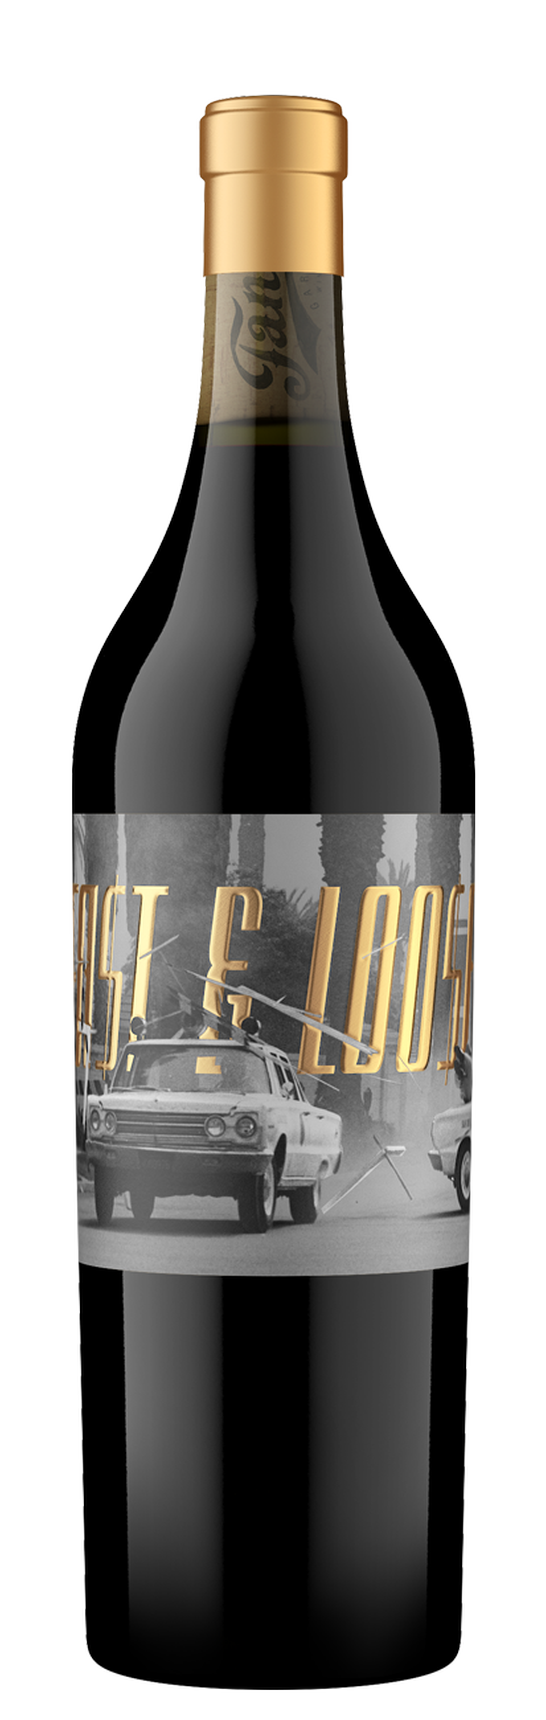 2018 Fast & Loose, Red Wine, California